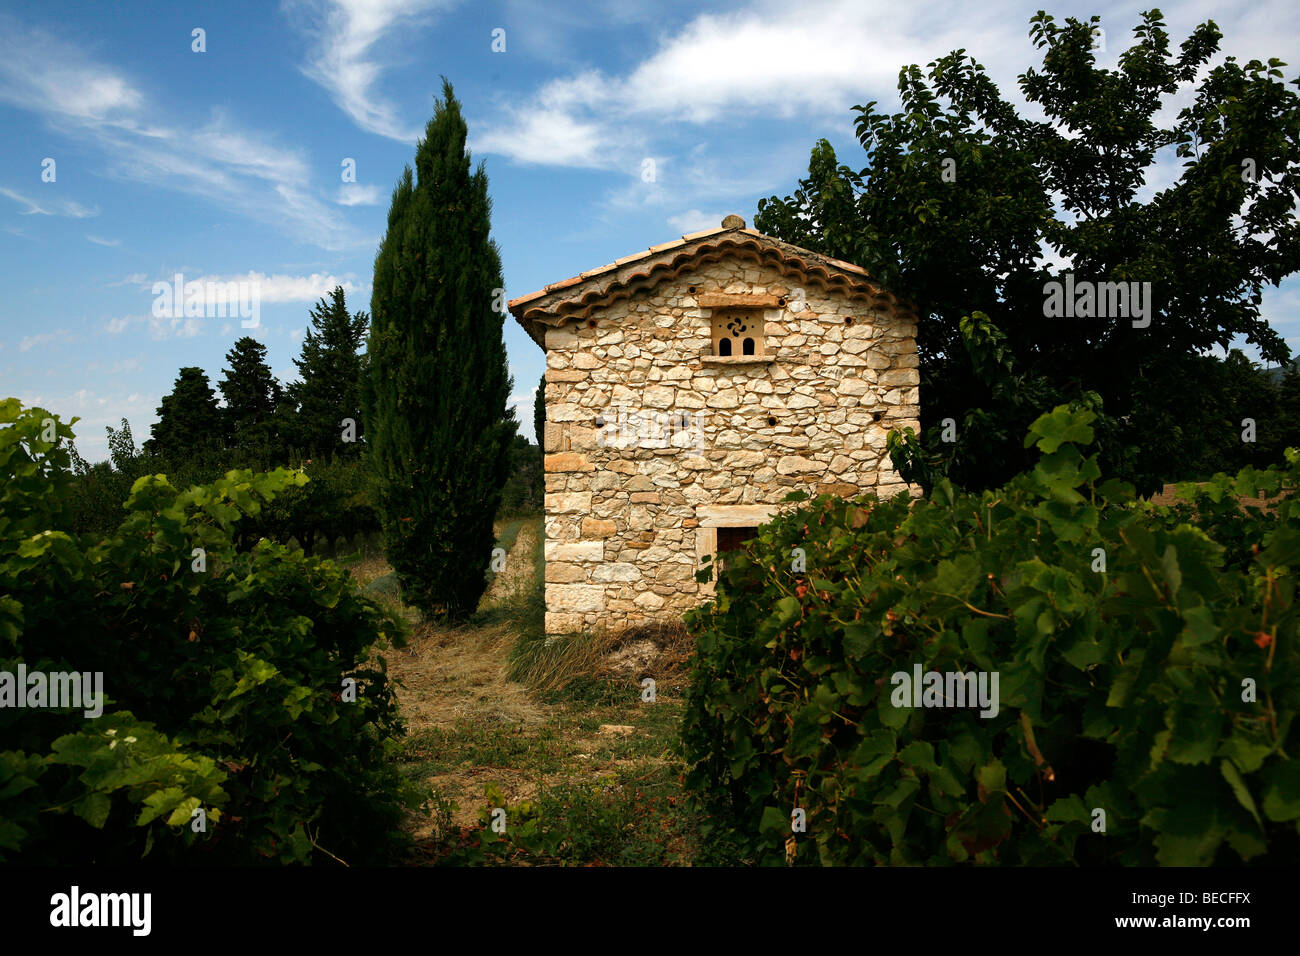 Agricultural building in a vineyard, France, Europe - Stock Image